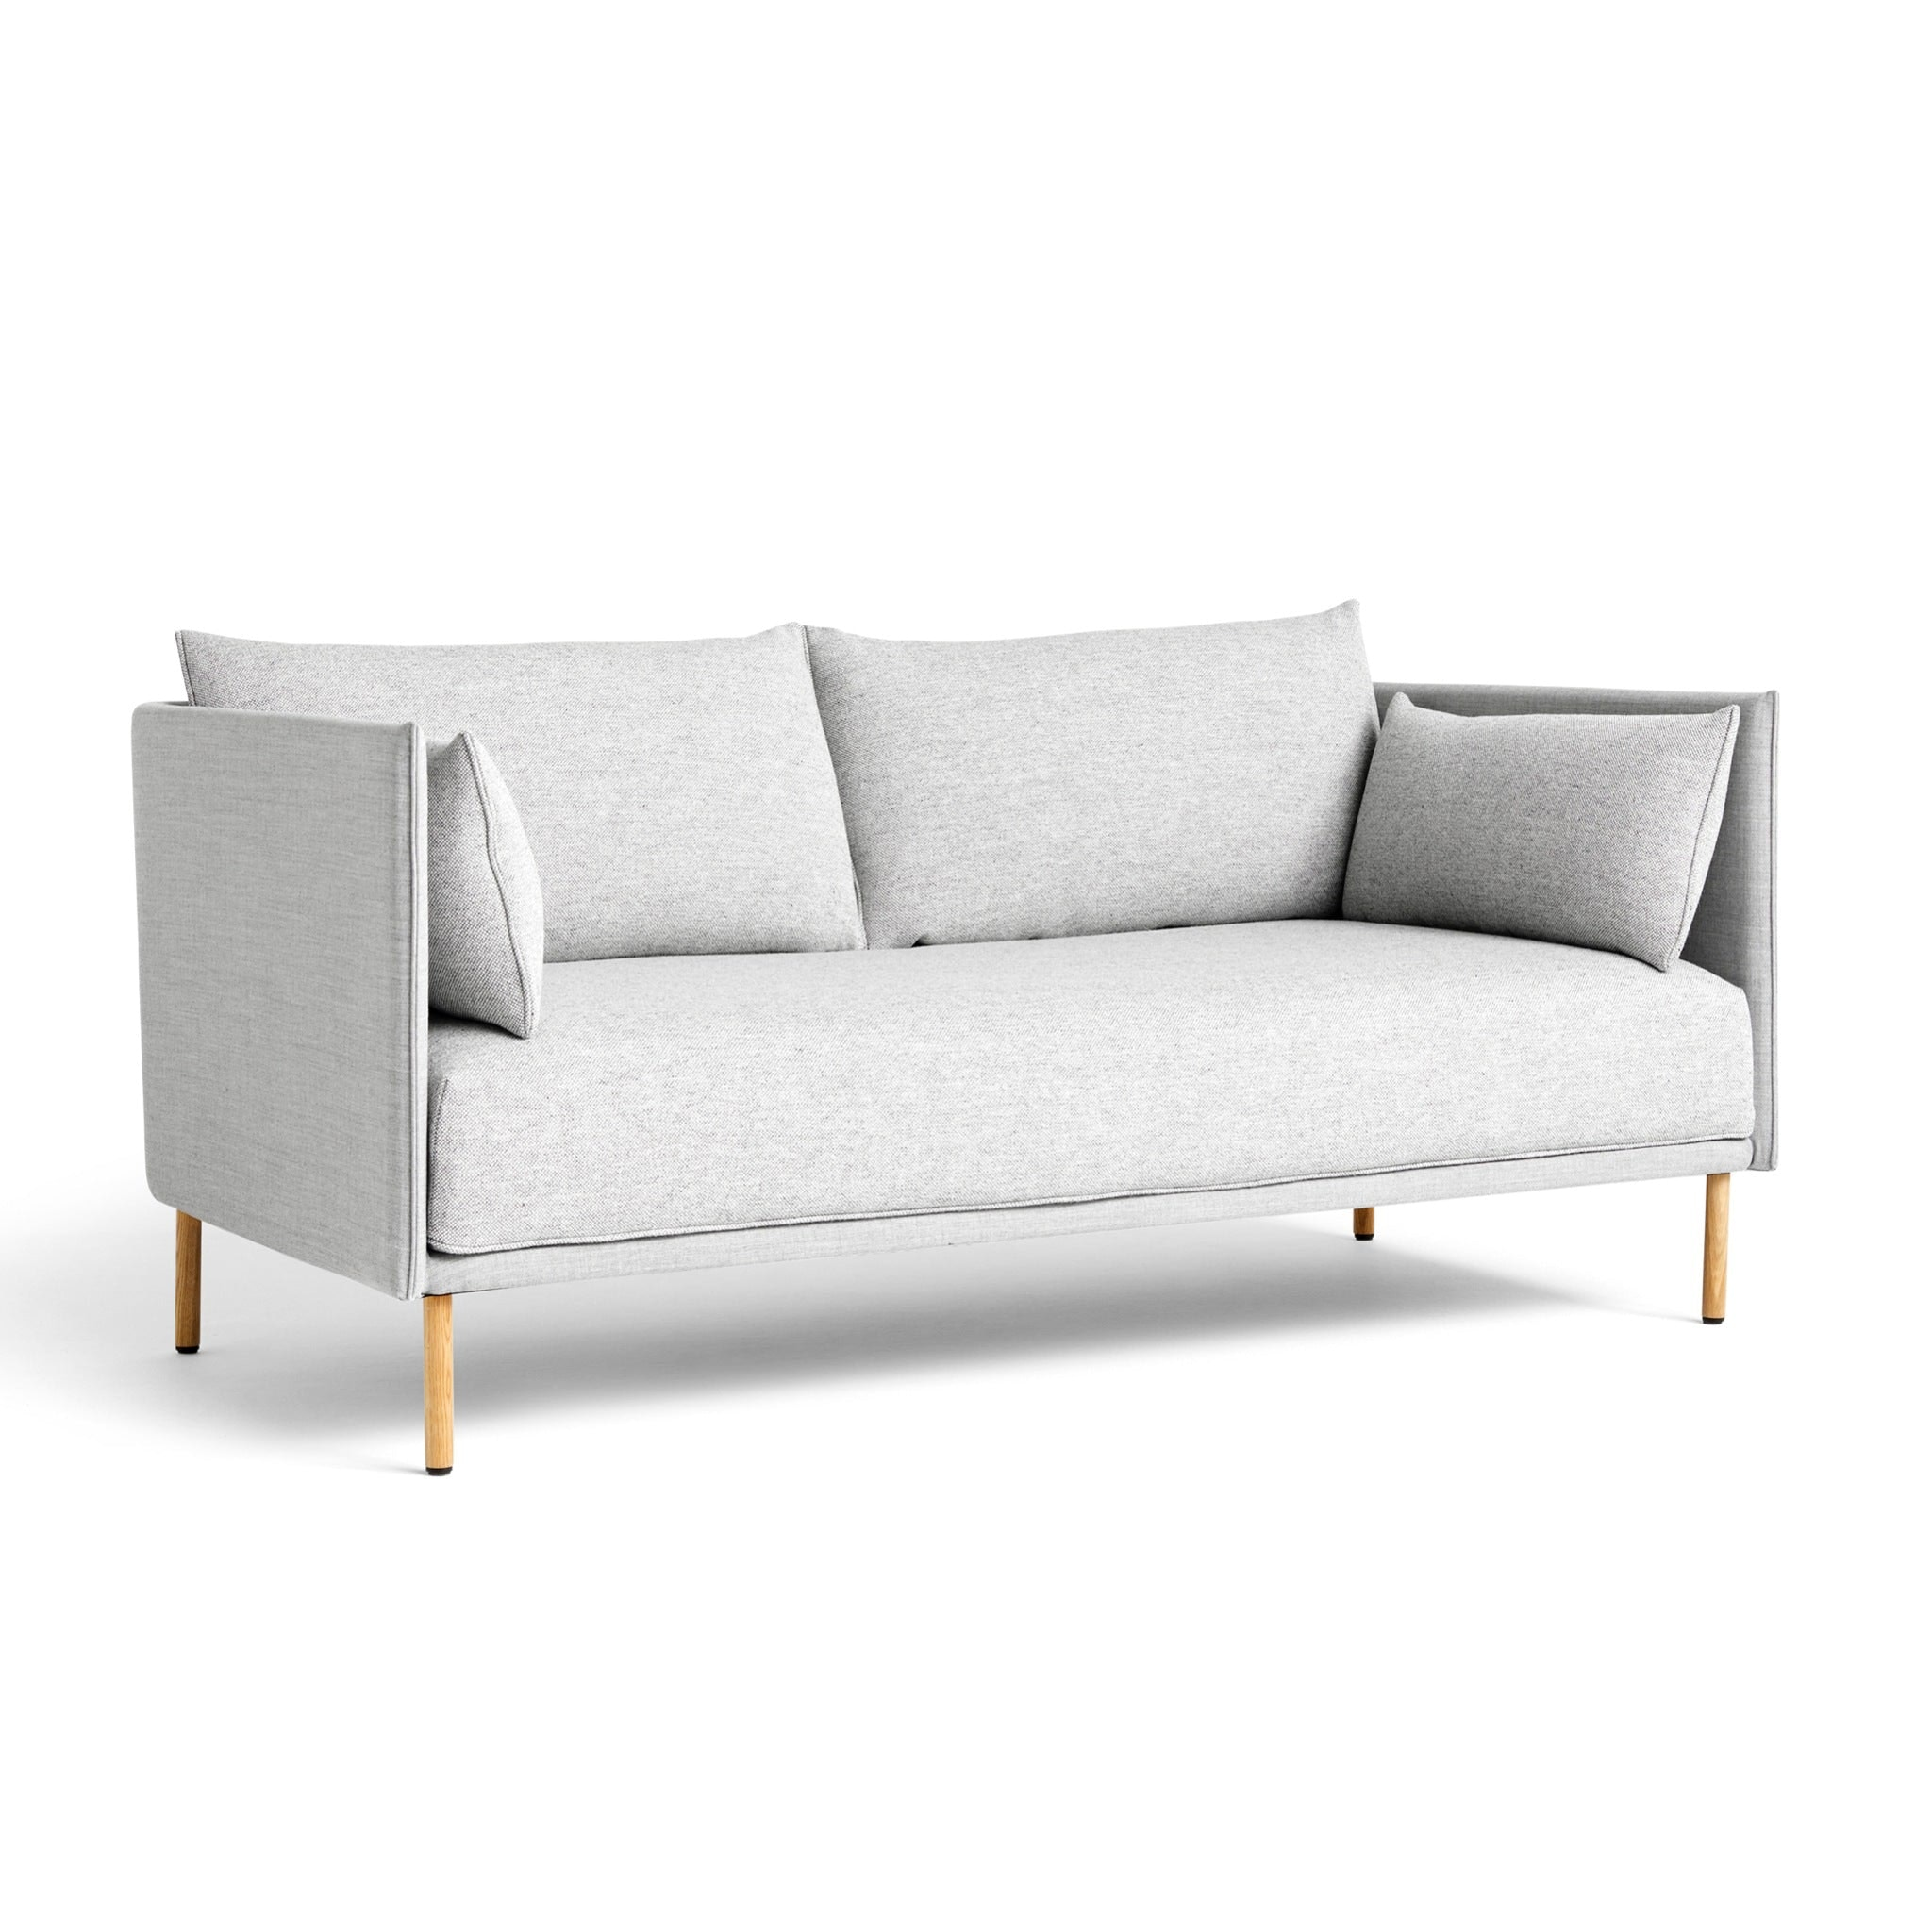 Silhouette Duo Sofa 2 Seater by Hay